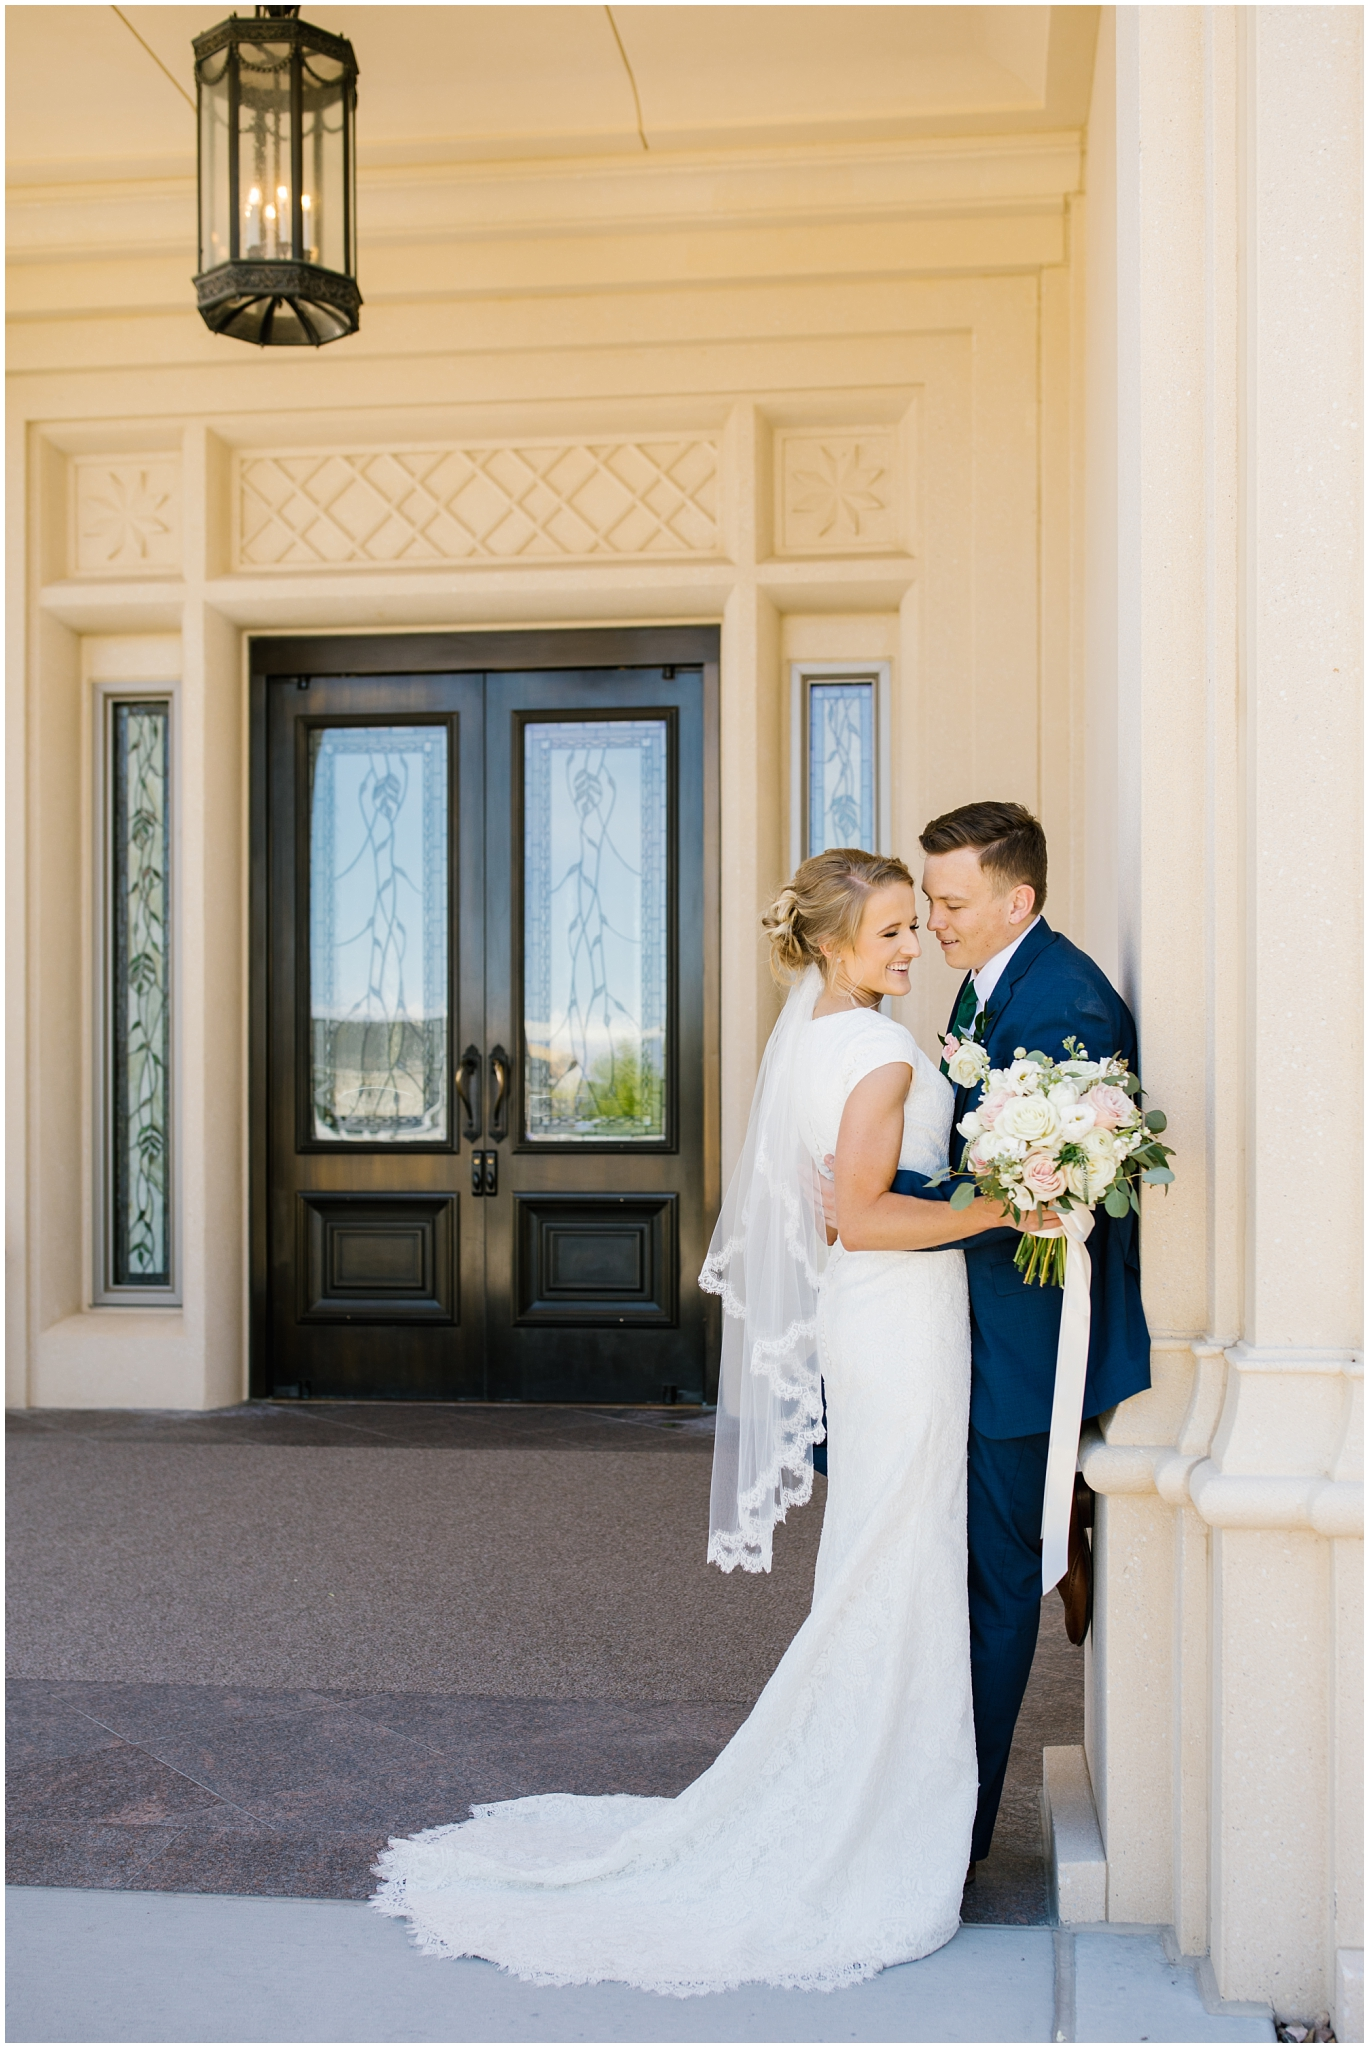 TA-Wedding-148_Lizzie-B-Imagery-Utah-Wedding-Photographer-Park-City-Salt-Lake-City-Thanksgiving-Point-Ashton-Gardens-Lehi-Utah.jpg